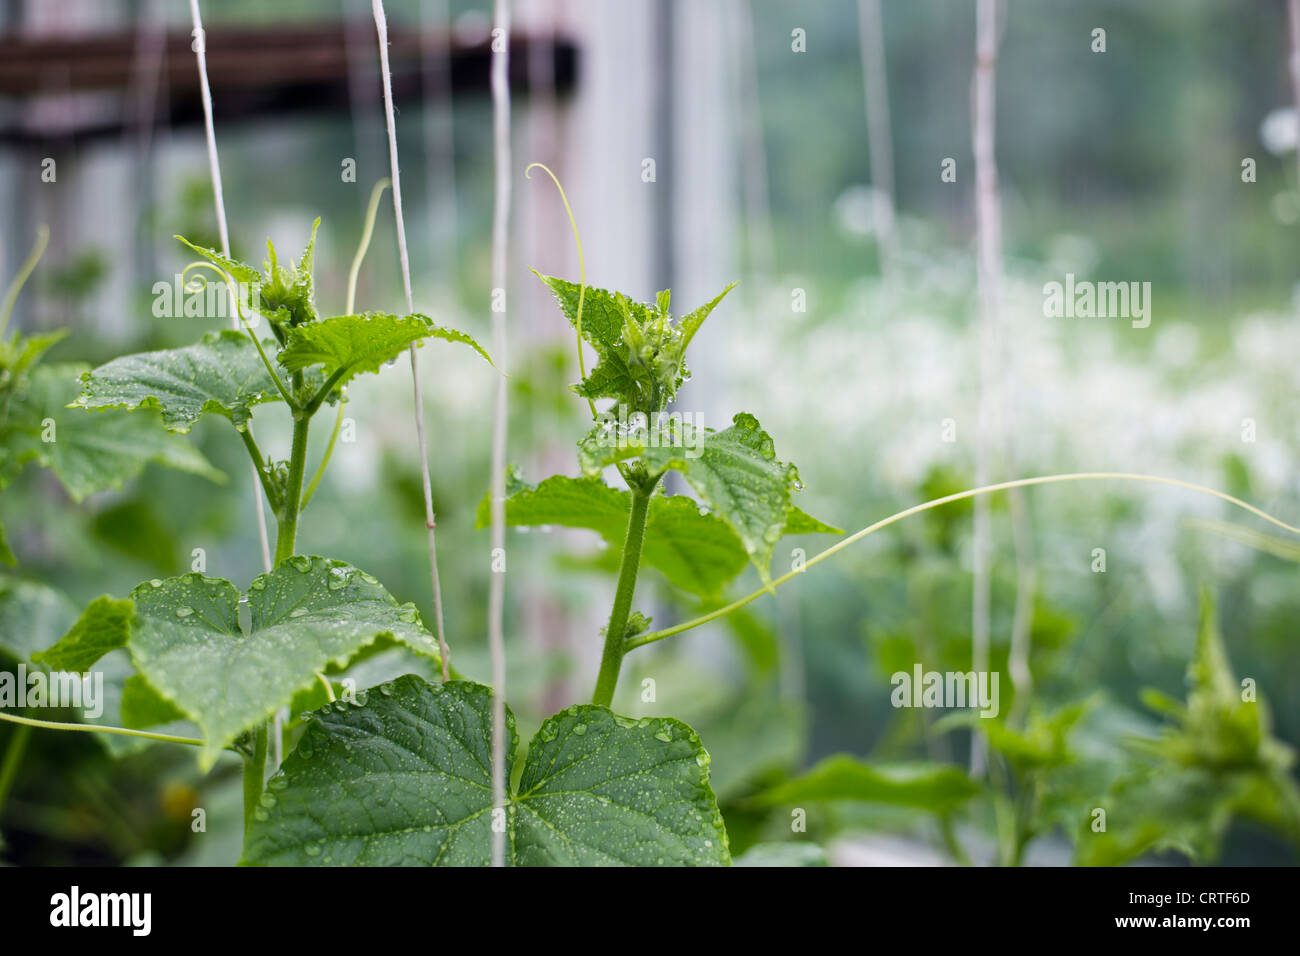 Green and wet plants is growing in greenhouse Stock Photo